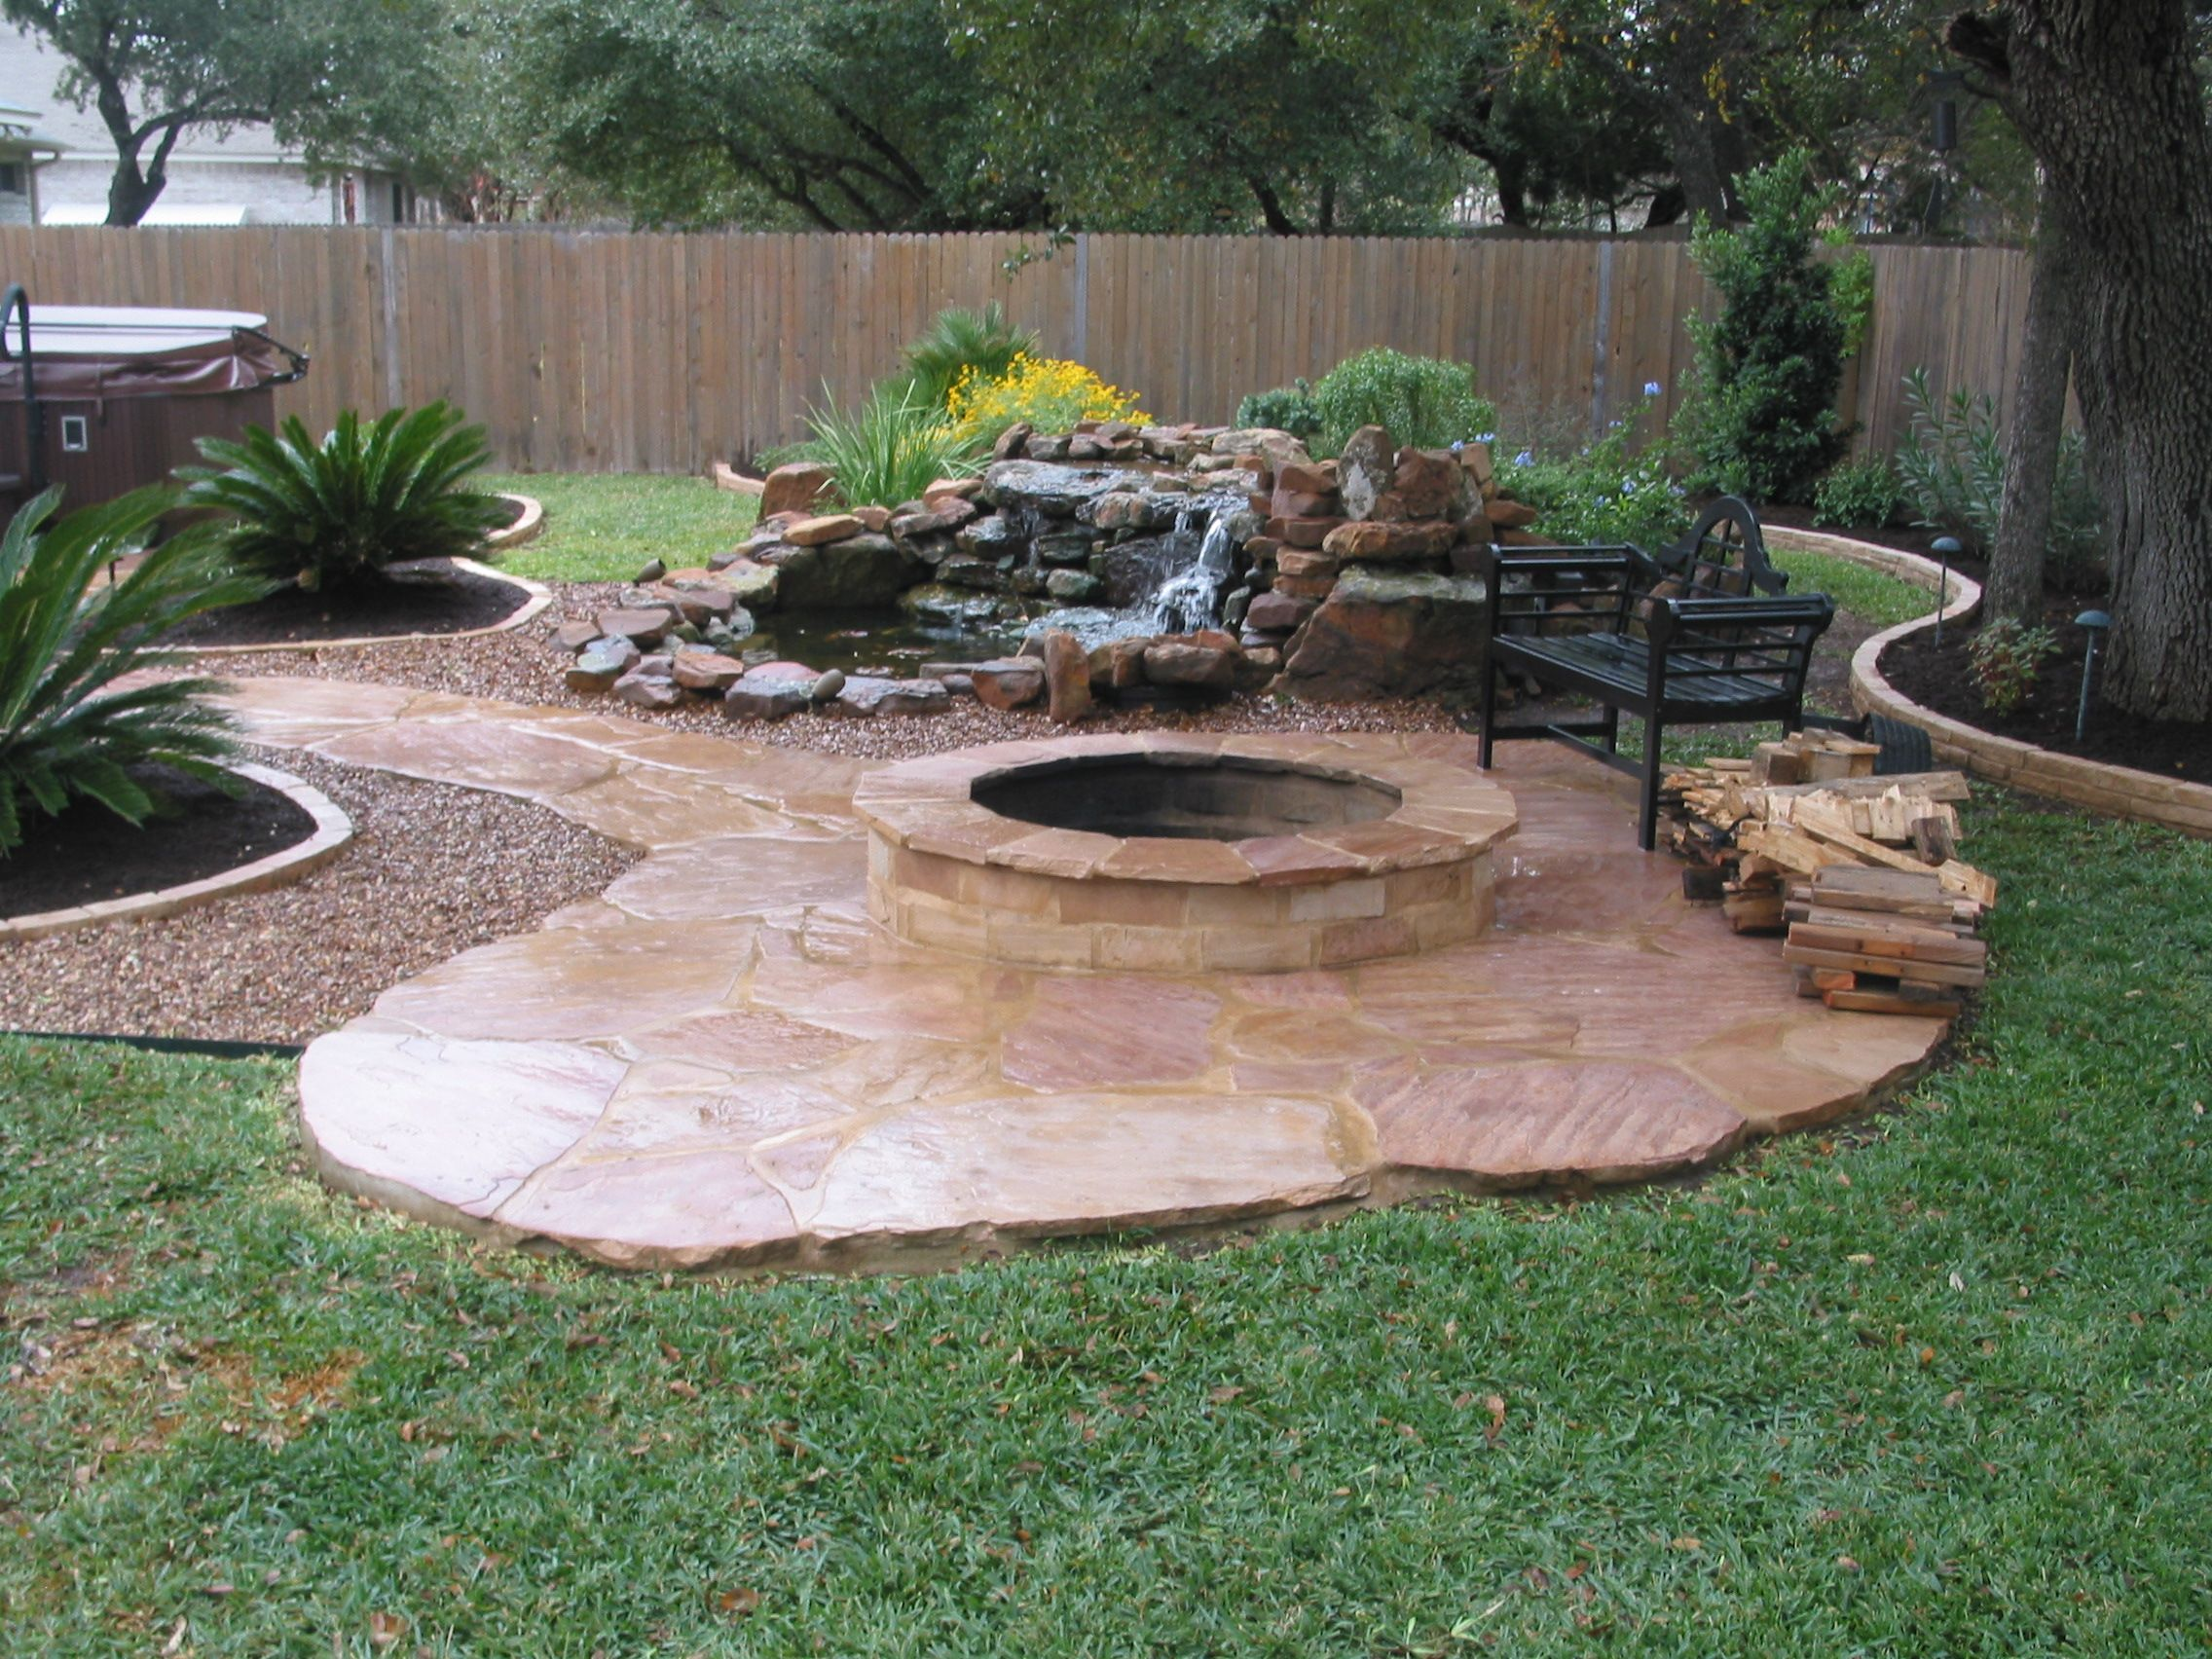 Stone fire pit designs patio traditional with artistic hardscape - Backyard Patio Ideas Patio Ideas Excellent Flagstone Patio With Fire Pit From Honed Limestone Tiles And Better Homes And Gardens Rock Fountain Also Old